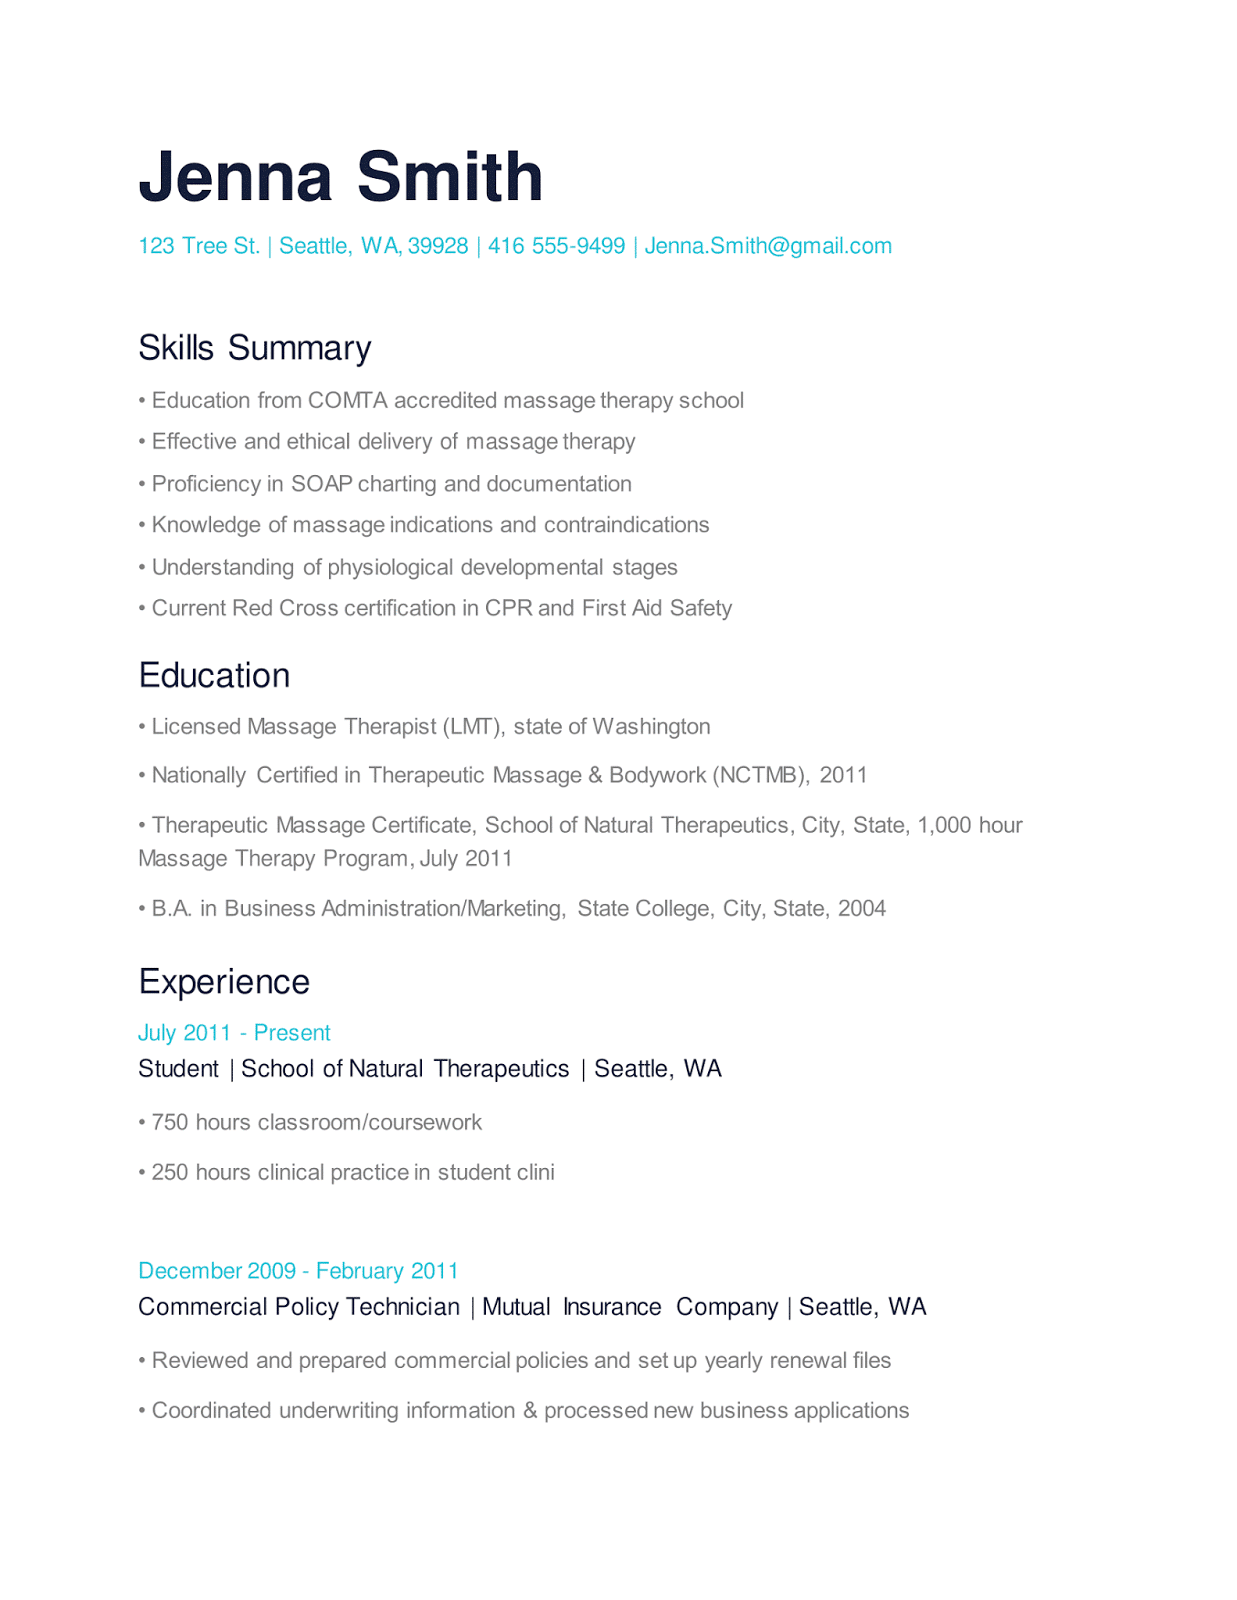 Quick Resume - Resumes Builder and Designer on the App Store ...